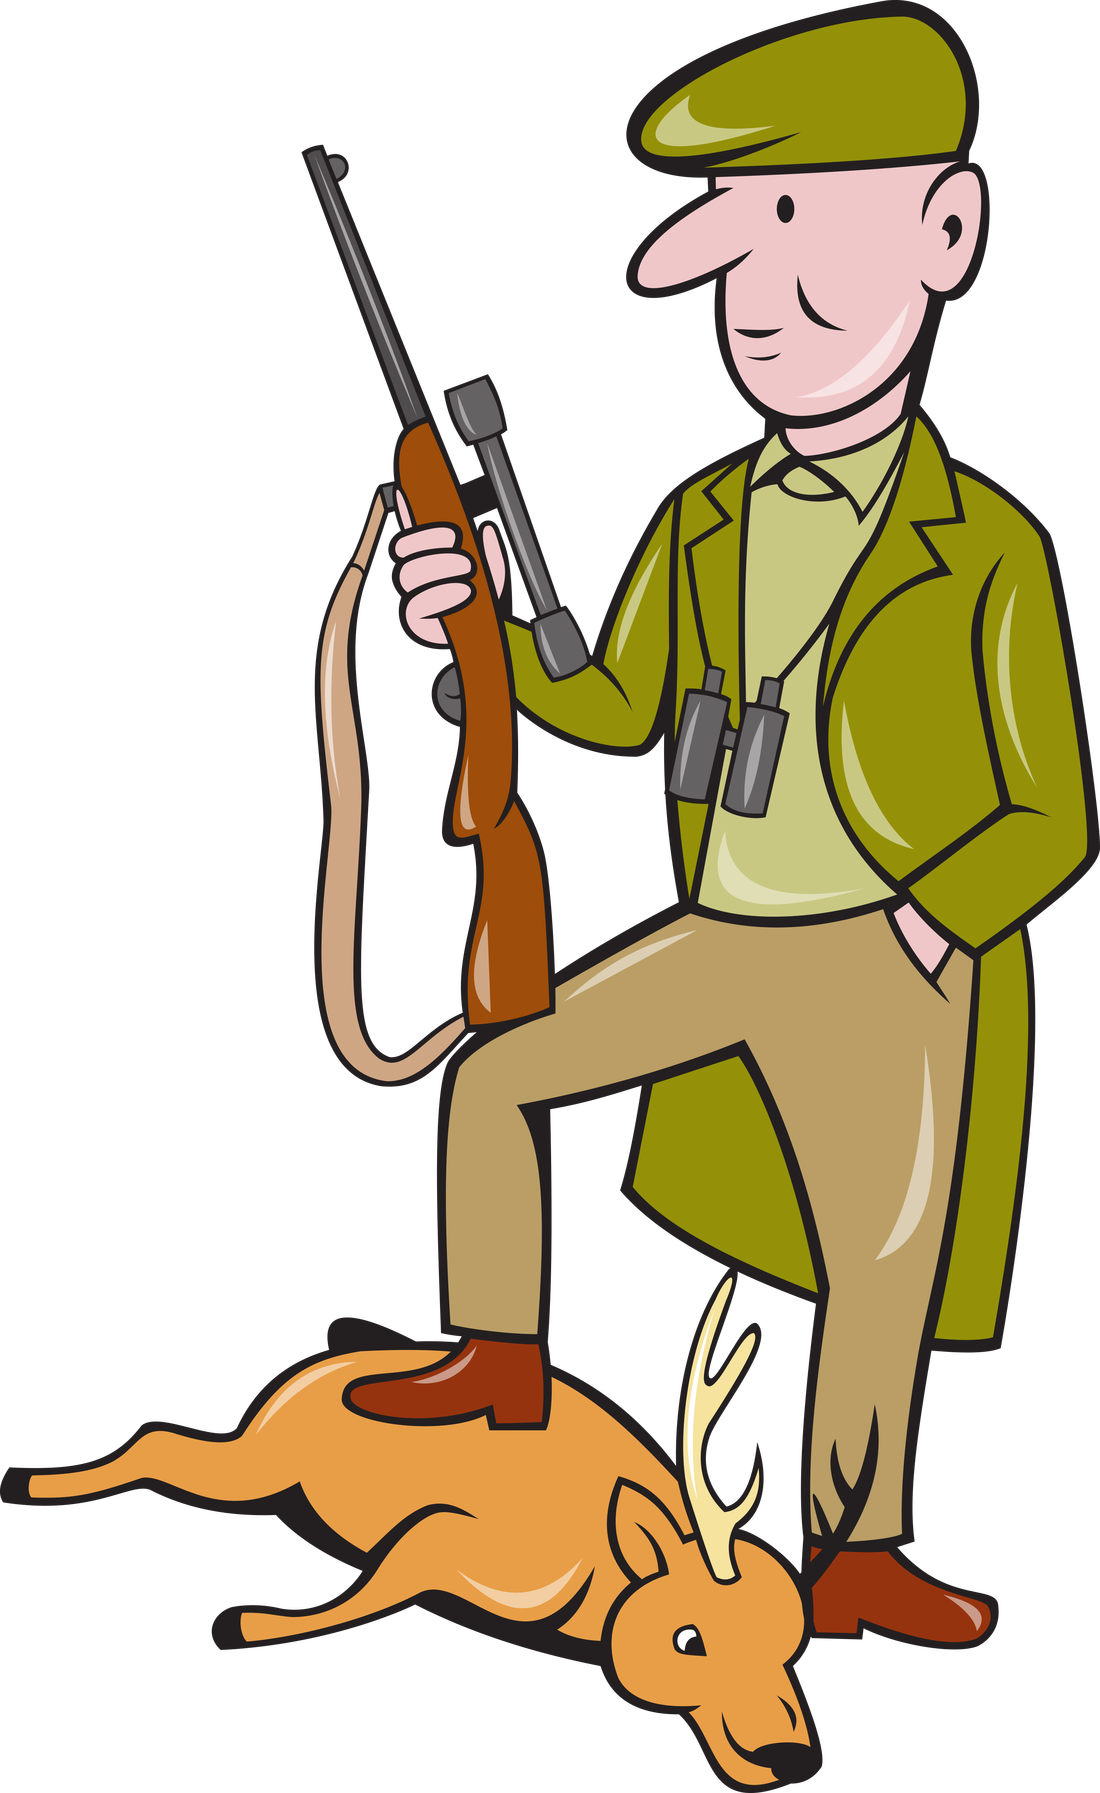 Cartoon deer hunter clipart images gallery for free download.